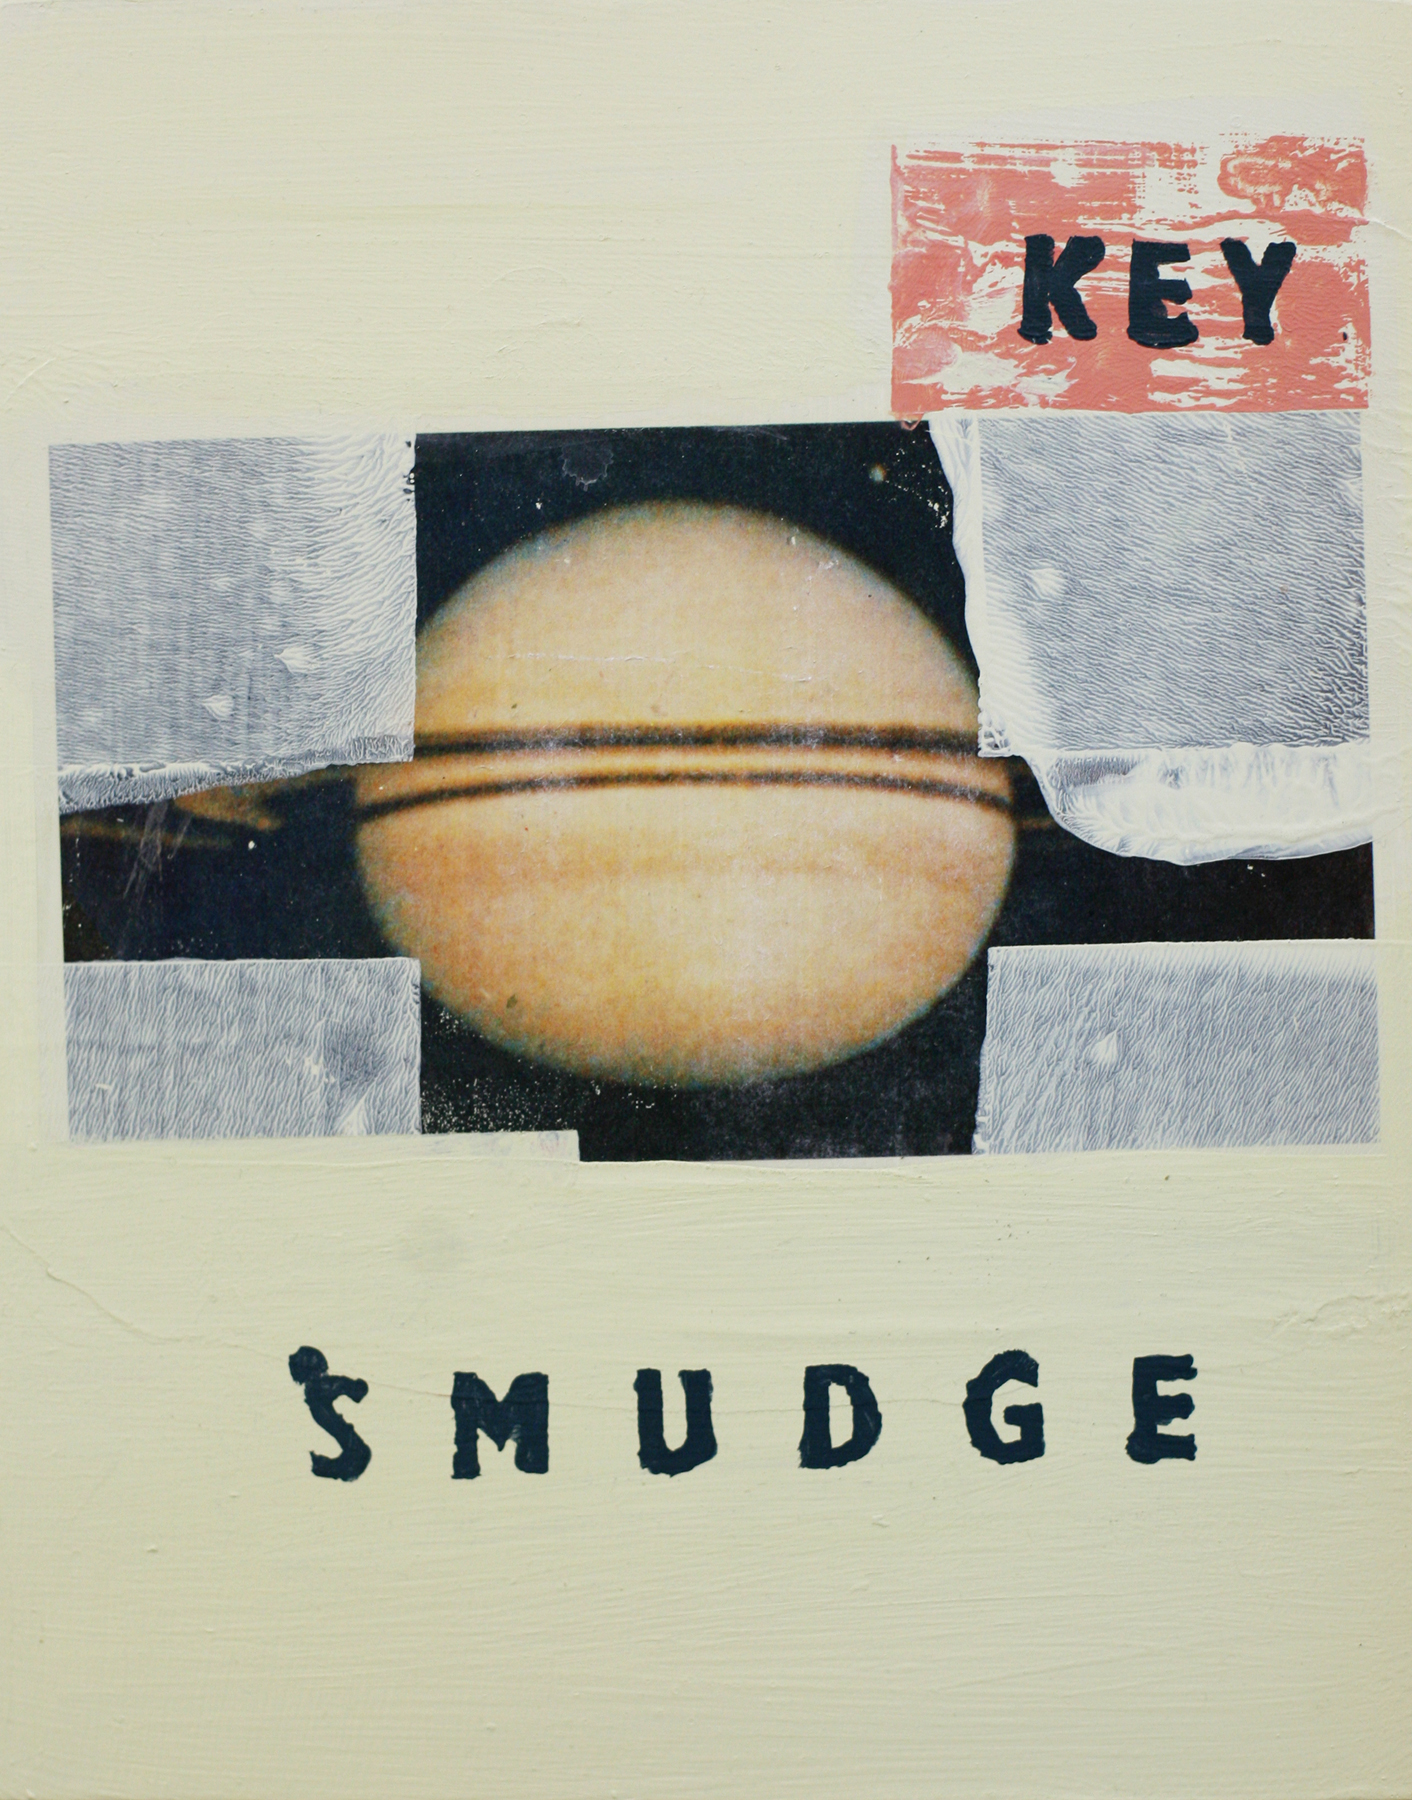 """The Key Smudge, acrylic and transfer on wood, 14"""" x 11"""""""